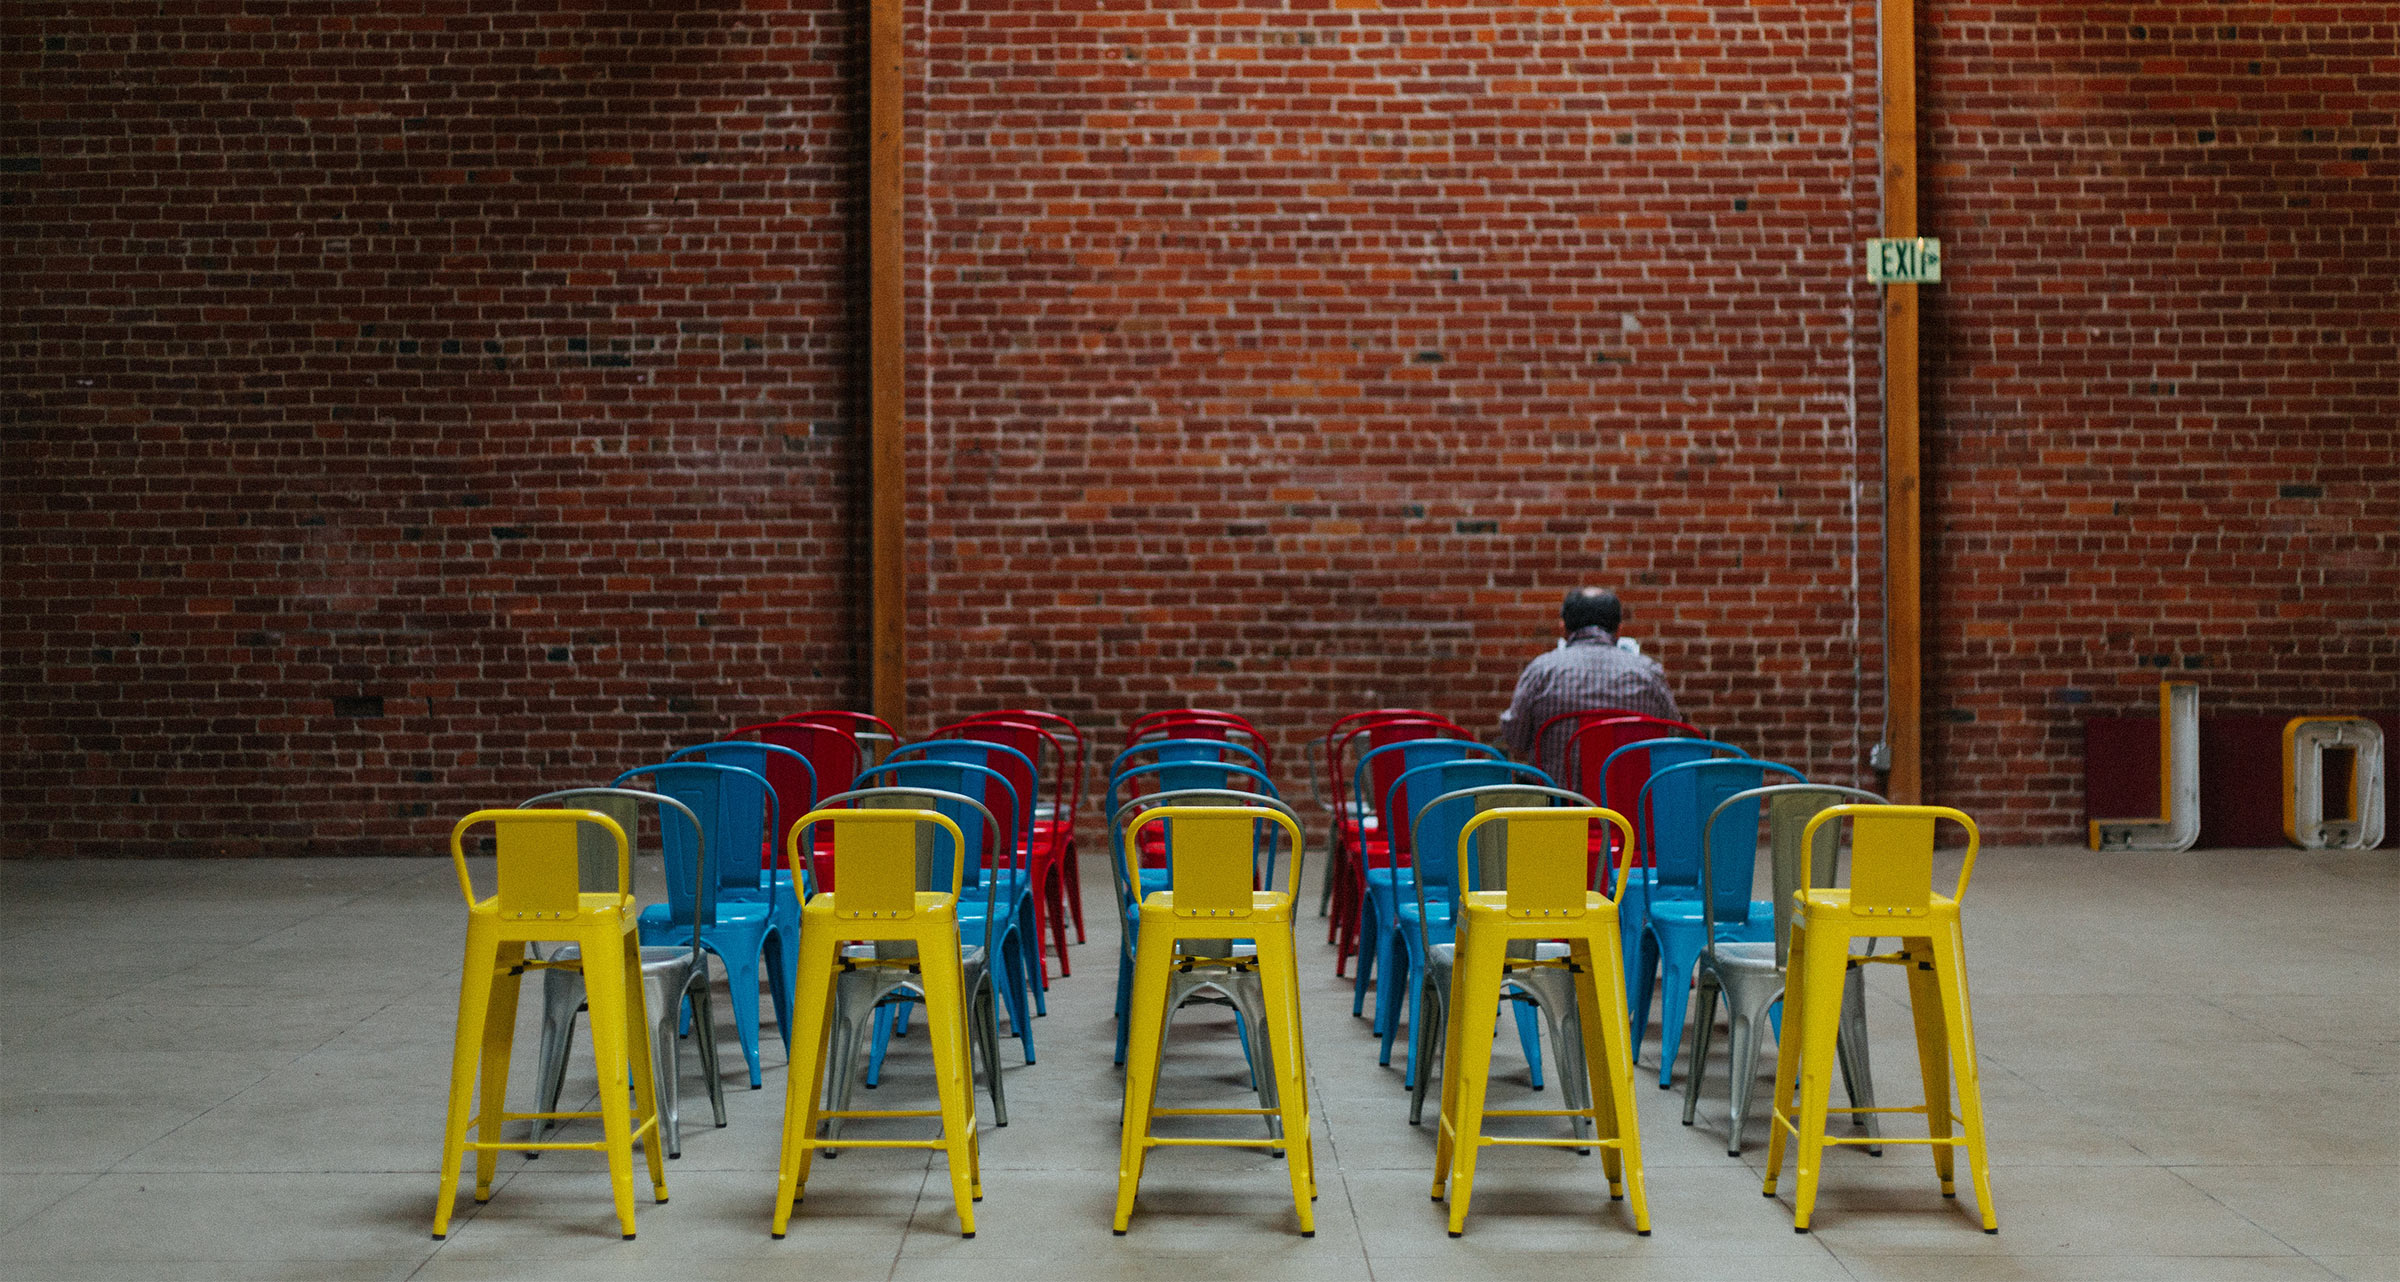 audience of empty chairs